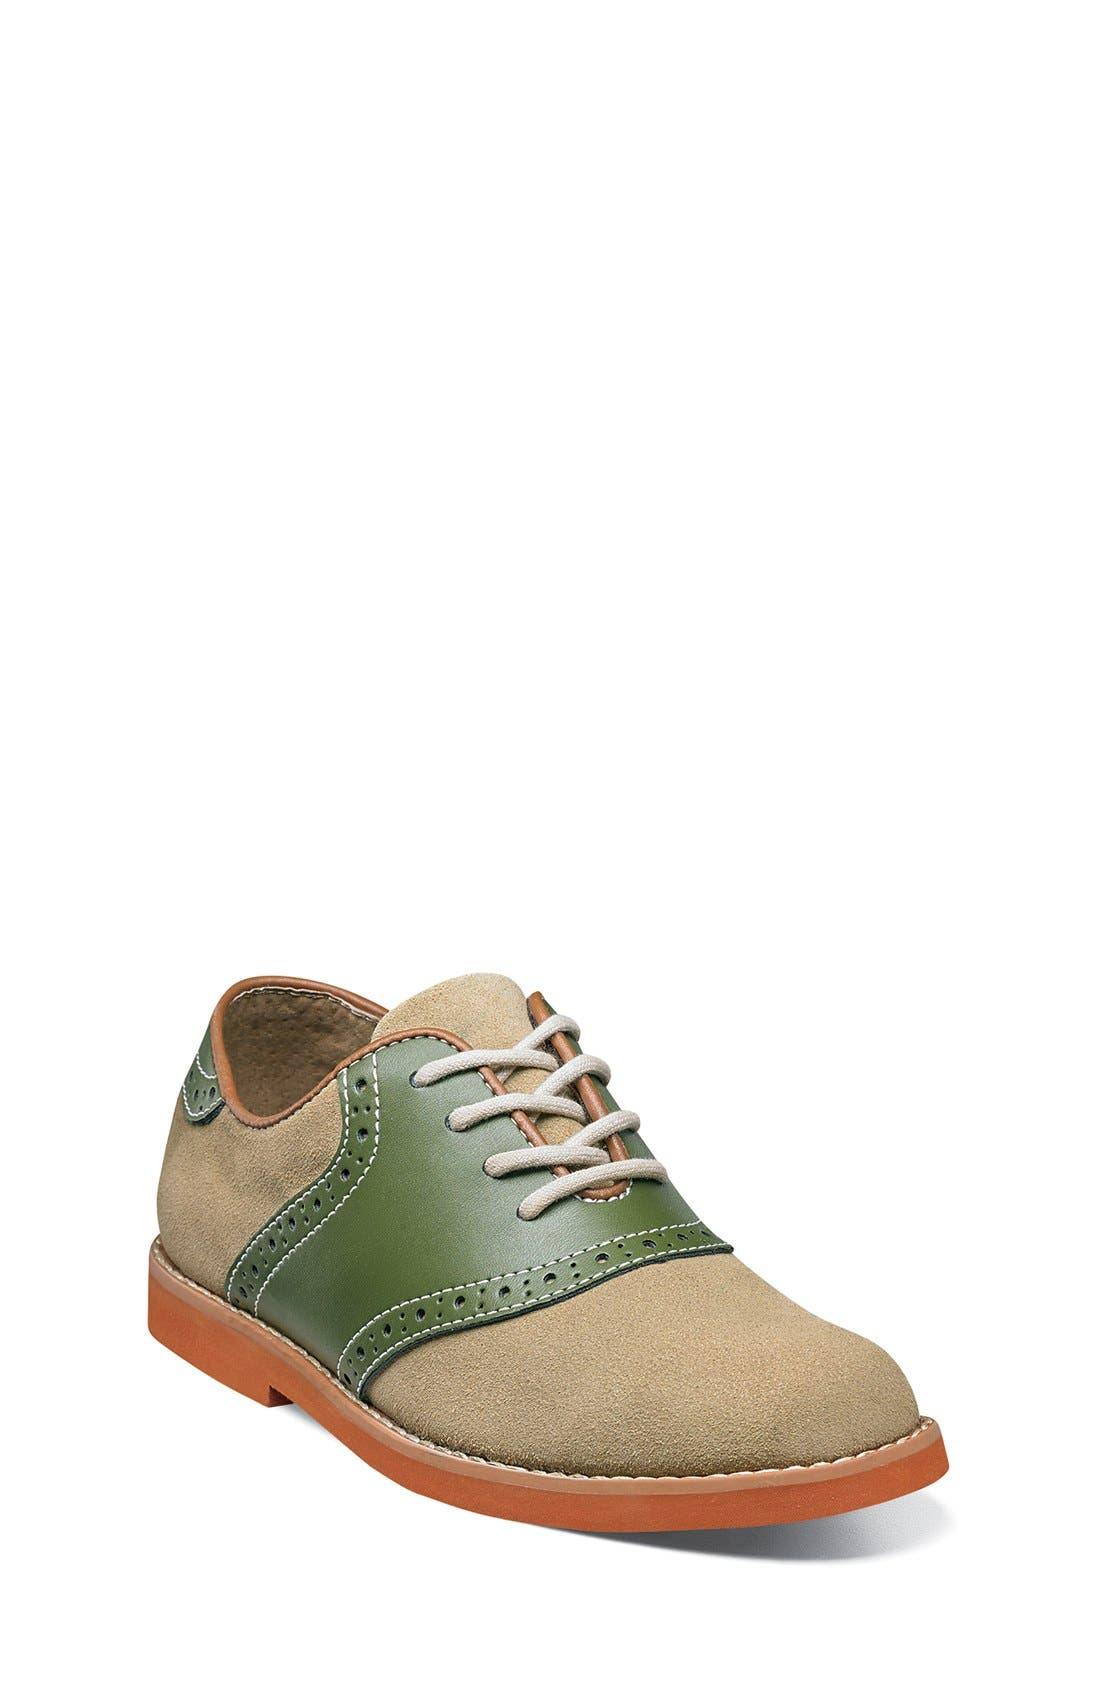 Alternate Image 1 Selected - Florsheim 'Kennett Jr.' Saddle Shoe (Toddler, Little Kid & Big Kid)